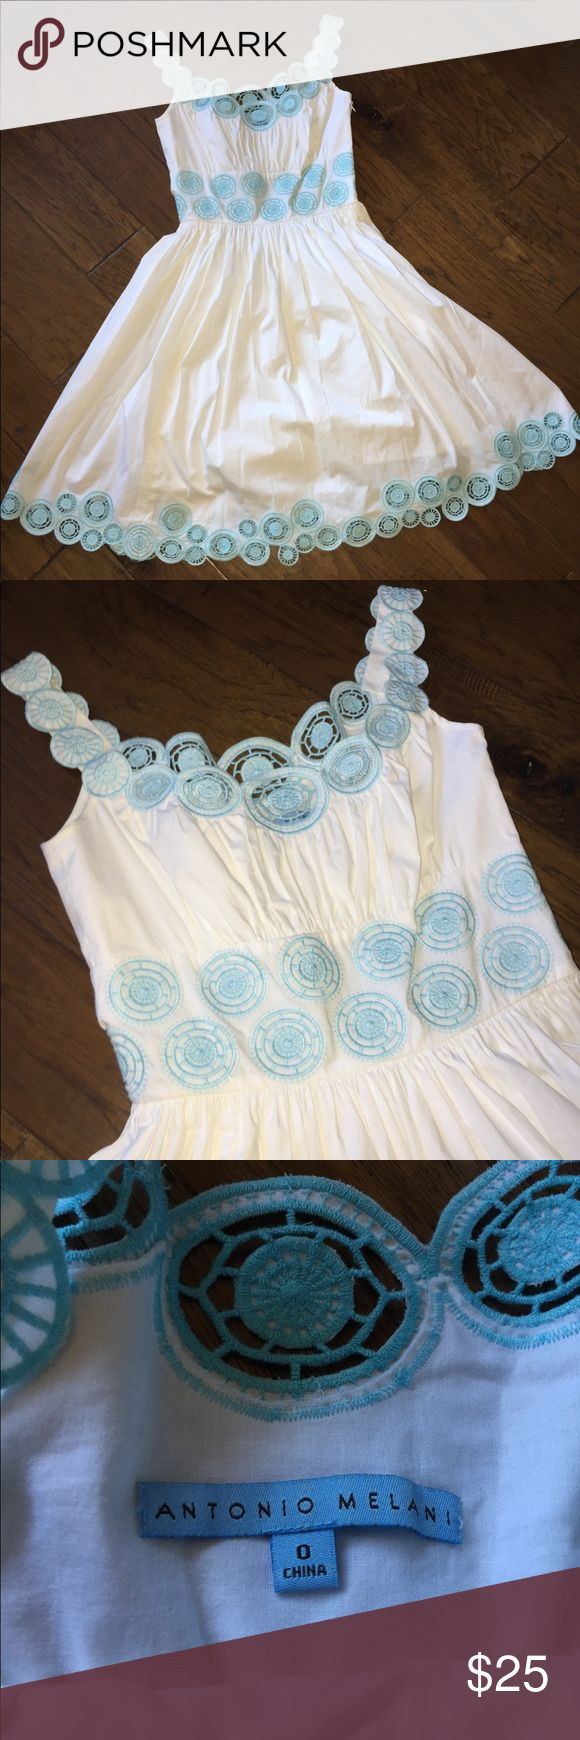 Antonio Melani White Summer Dress - Sz 0 Crisp white dress with pastel blue accents. It accentuates the waist and the skirt falls so pretty! ANTONIO MELANI Dresses